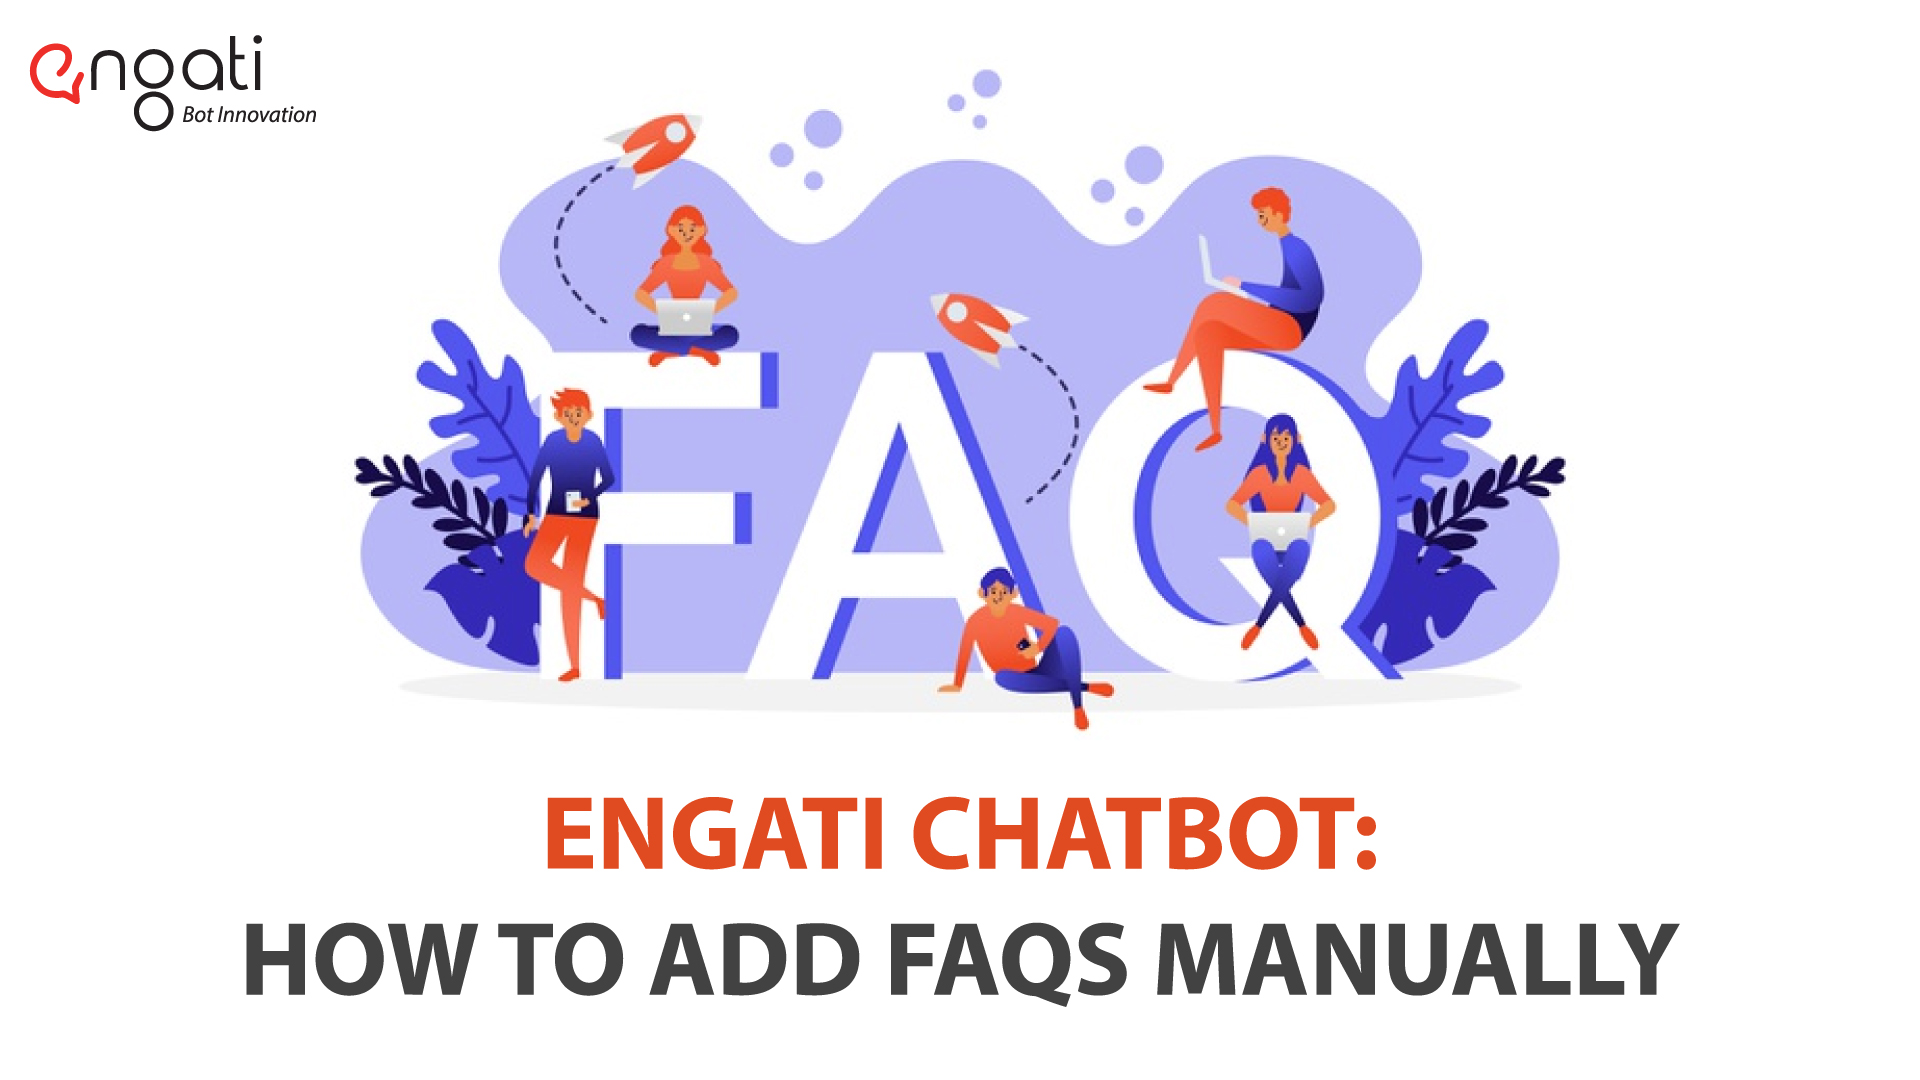 adding FAQs to a chatbot